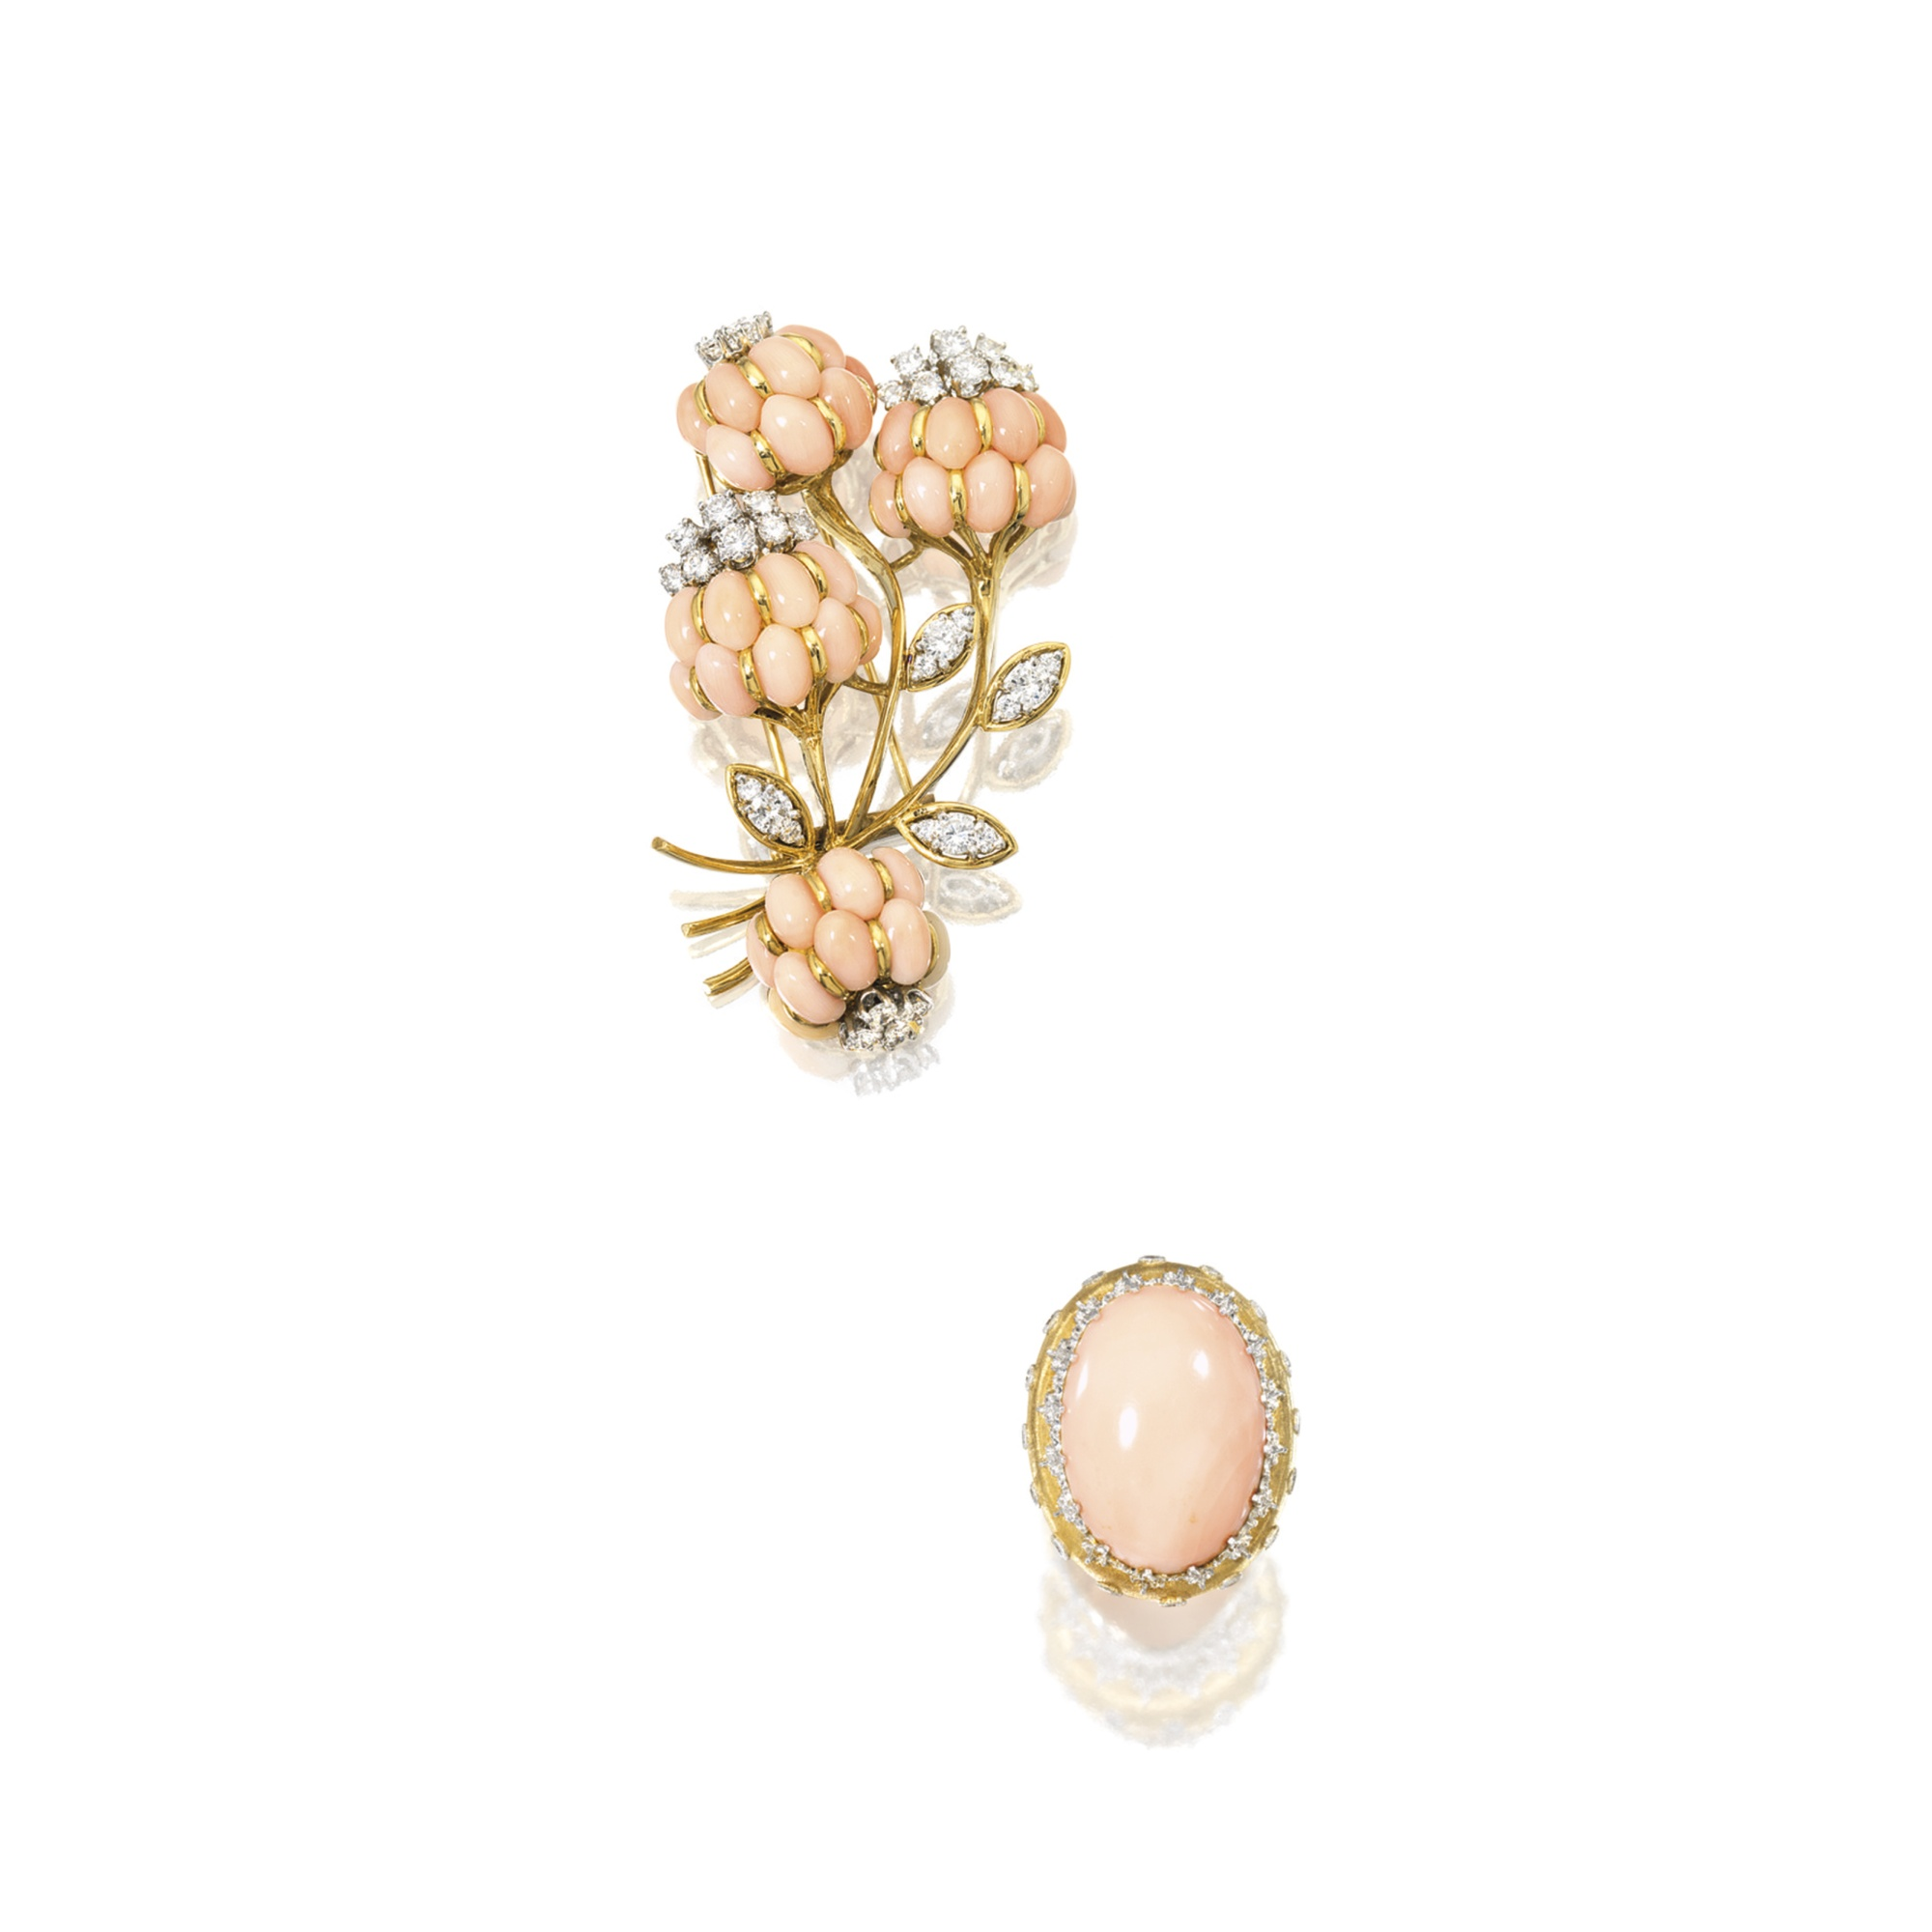 Coral and Diamond Ring, Buccellati; and Coral and Diamond 'Flower' Brooch